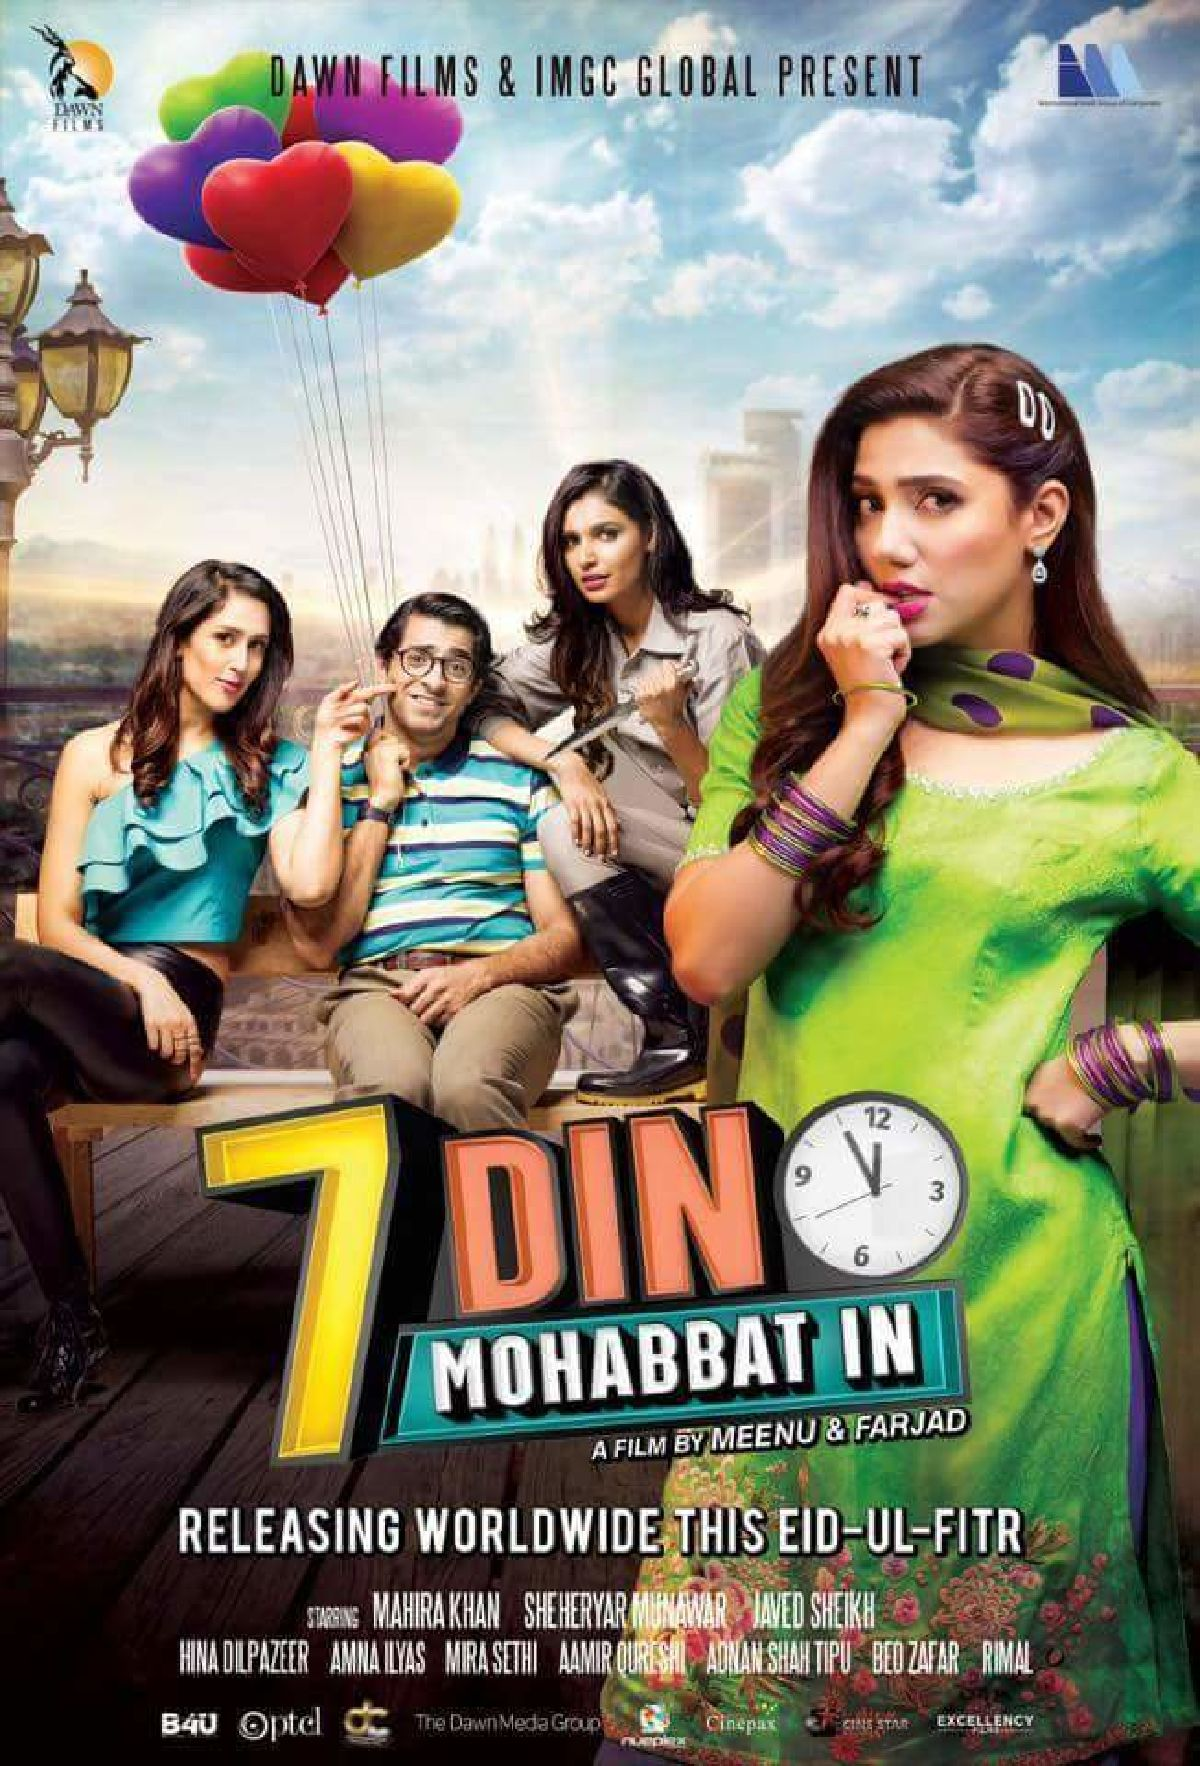 'Saat Din Mohabbat In' movie poster